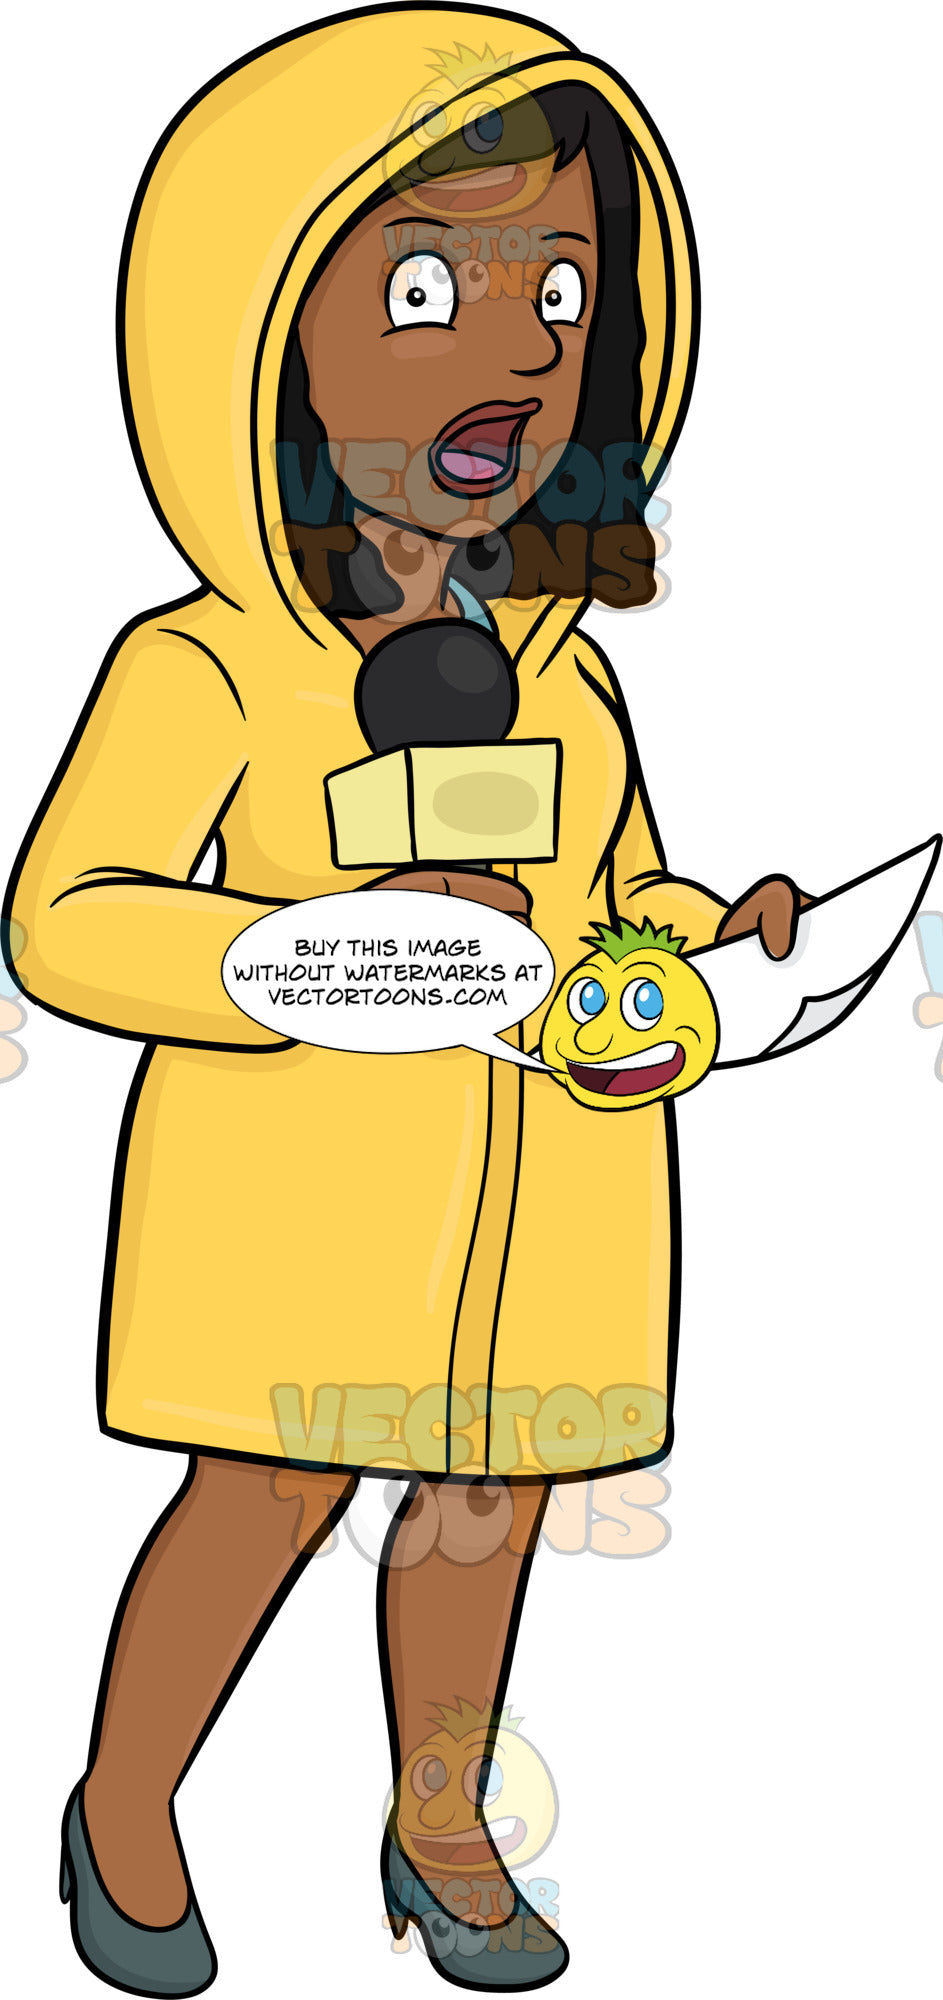 A Black Female Broadcaster In Raincoat Reporting News From The Field Despite The Bad Weather